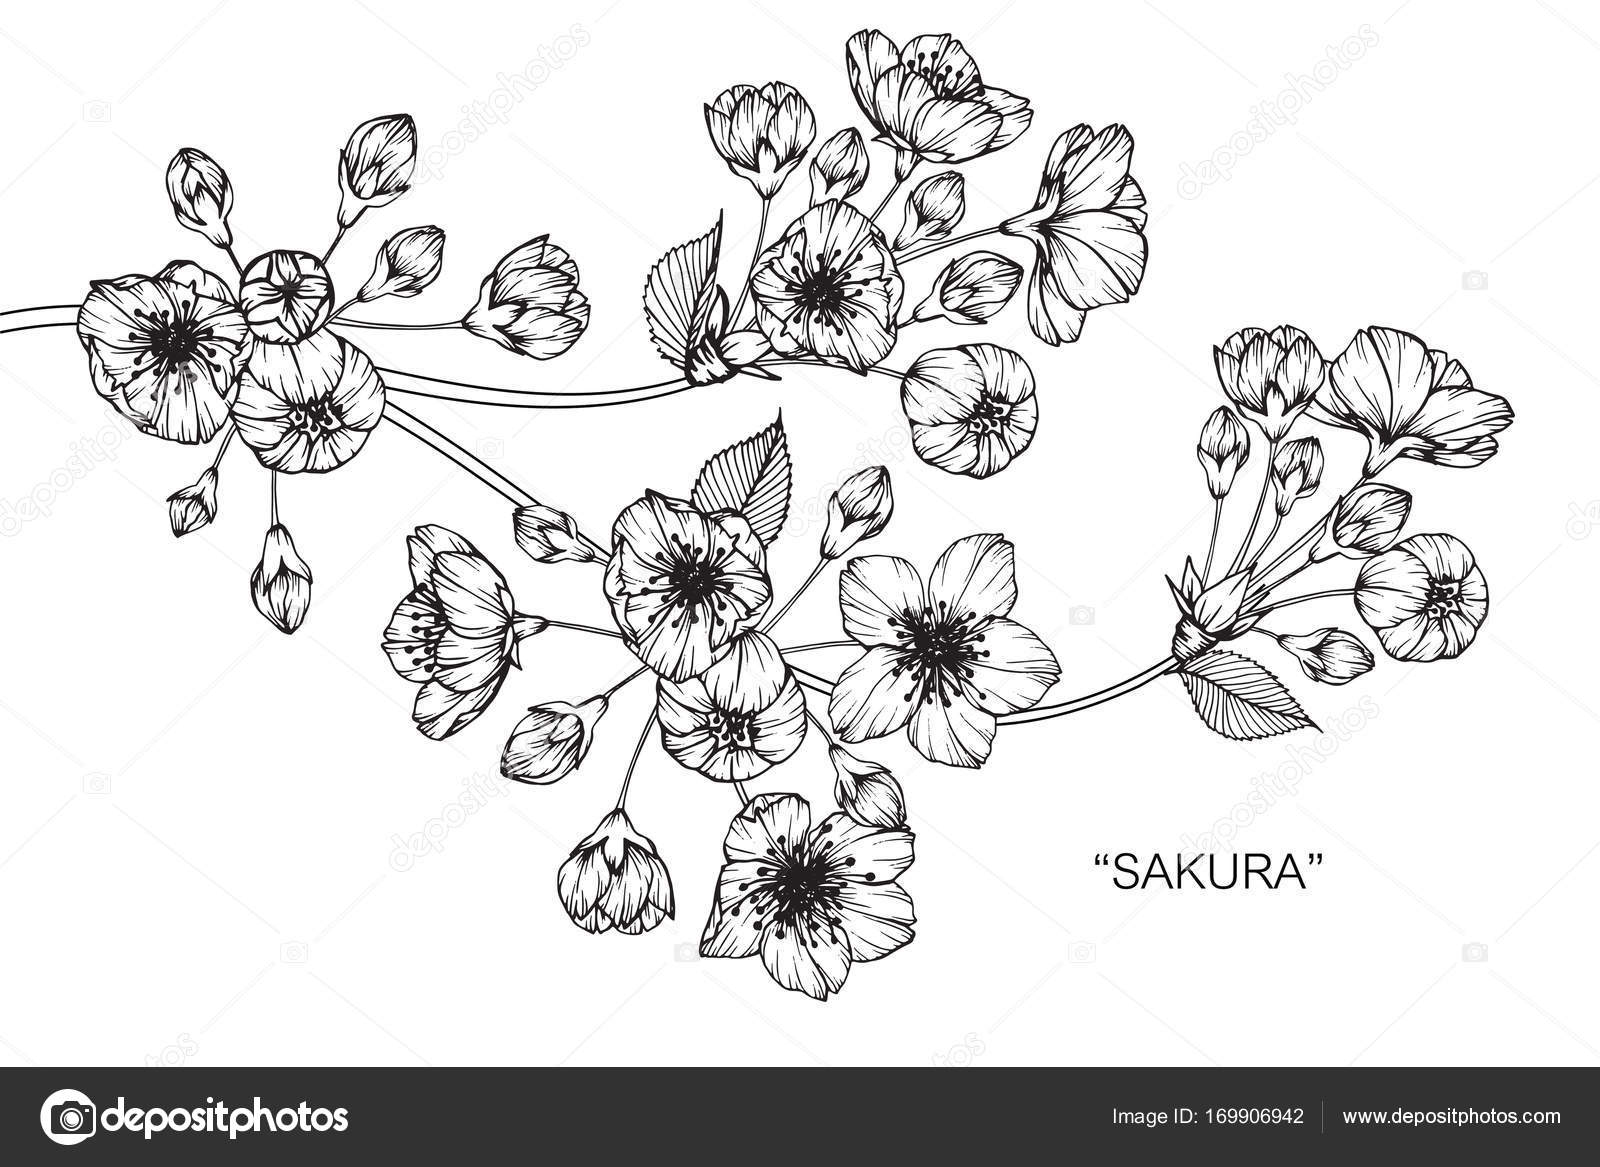 Cherry blossom flower drawing sketch black white line art stock cherry blossom flower drawing sketch black white line art stock vector mightylinksfo